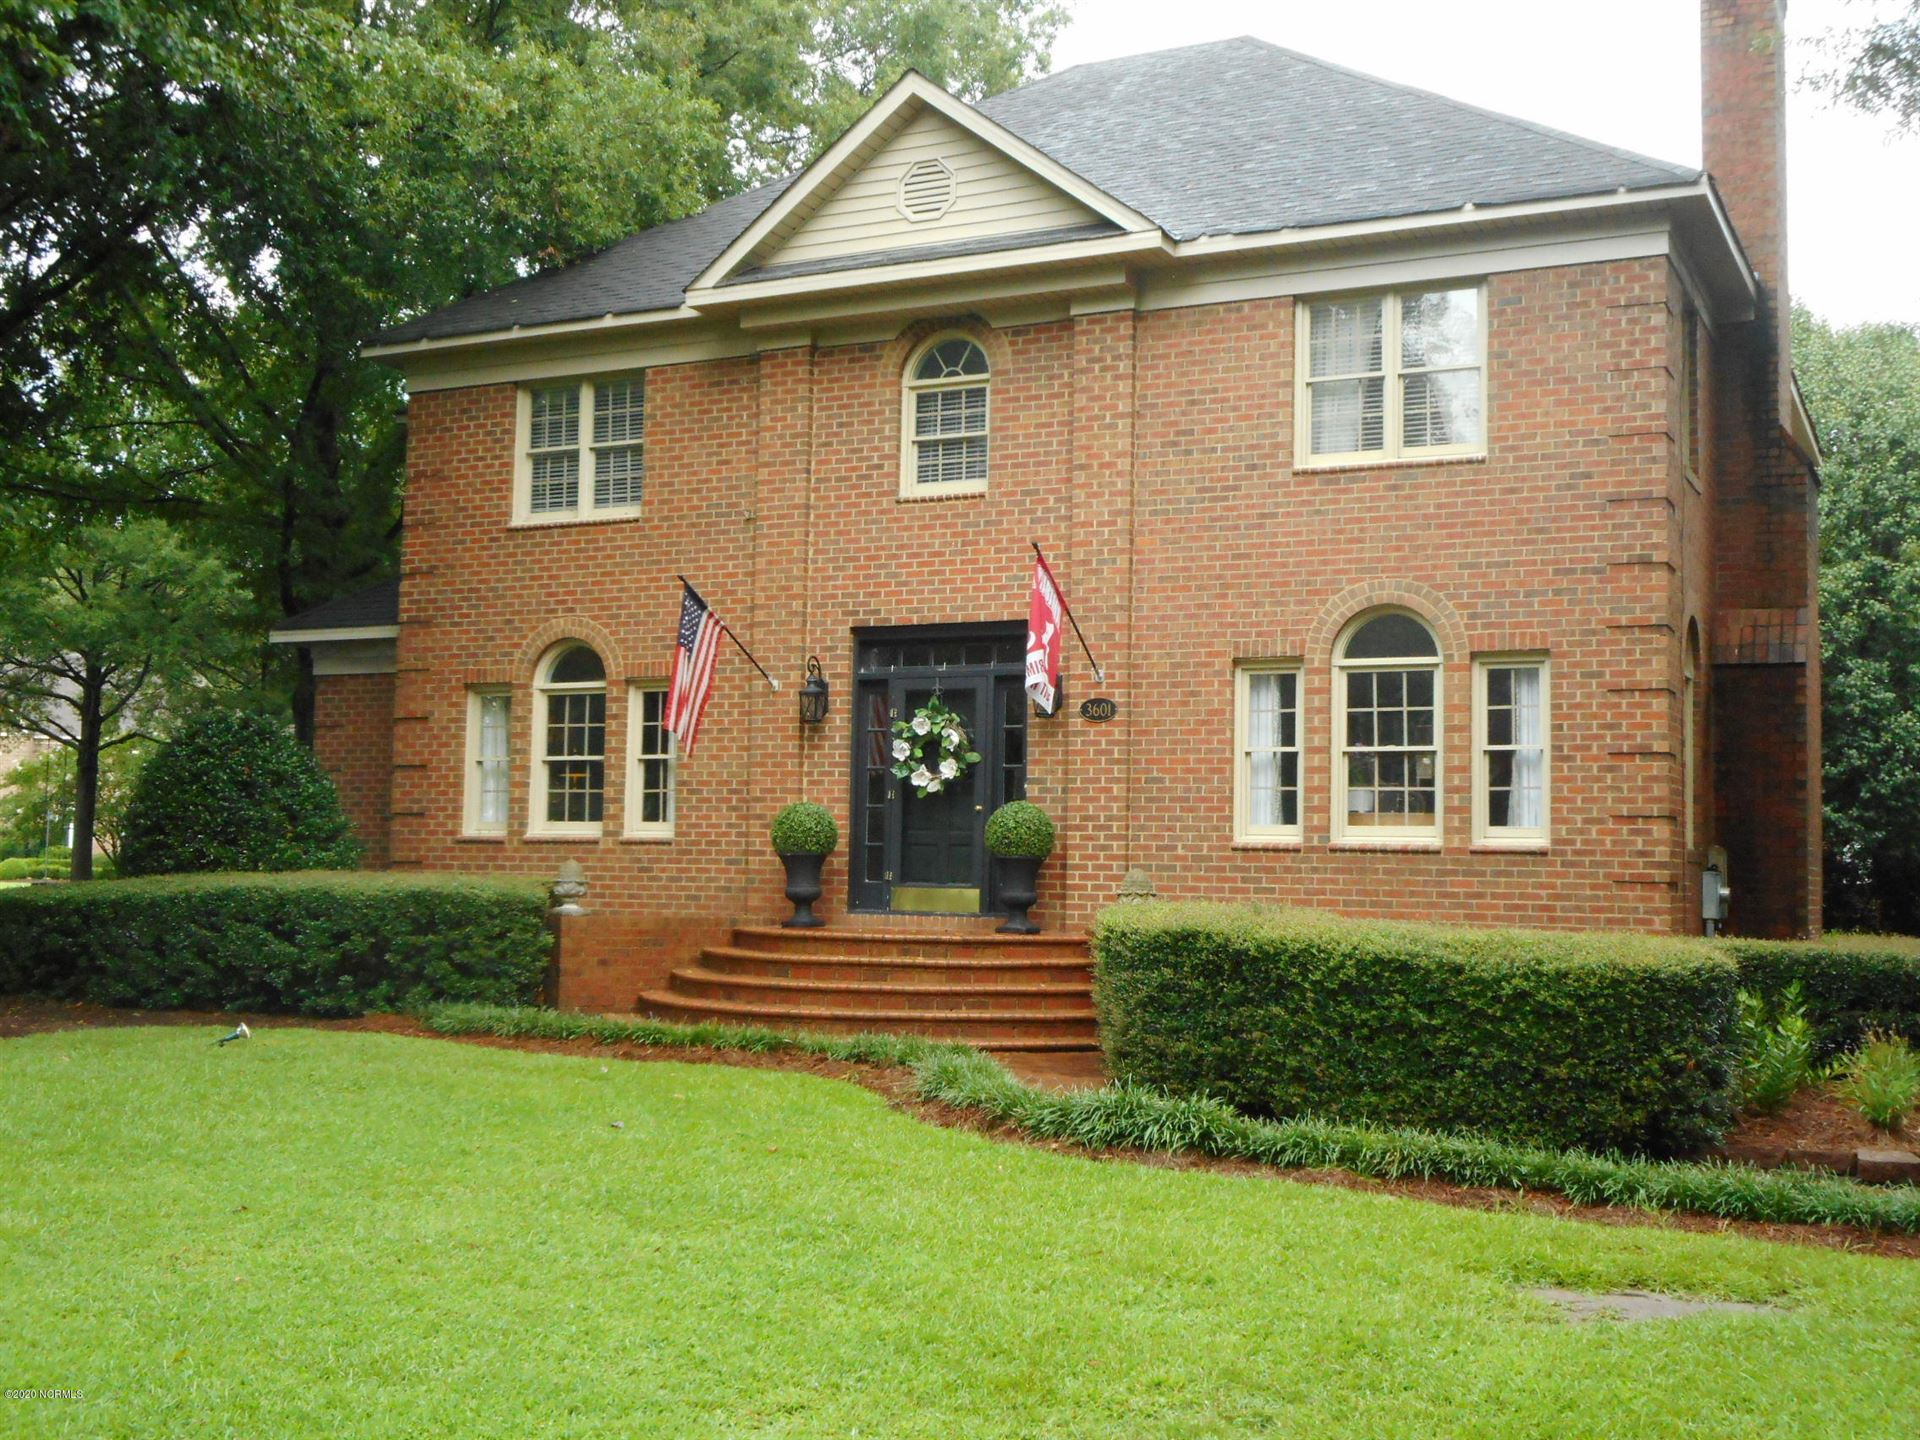 Photo of 3601 Coventry Court, Greenville, NC 27858 (MLS # 100232546)